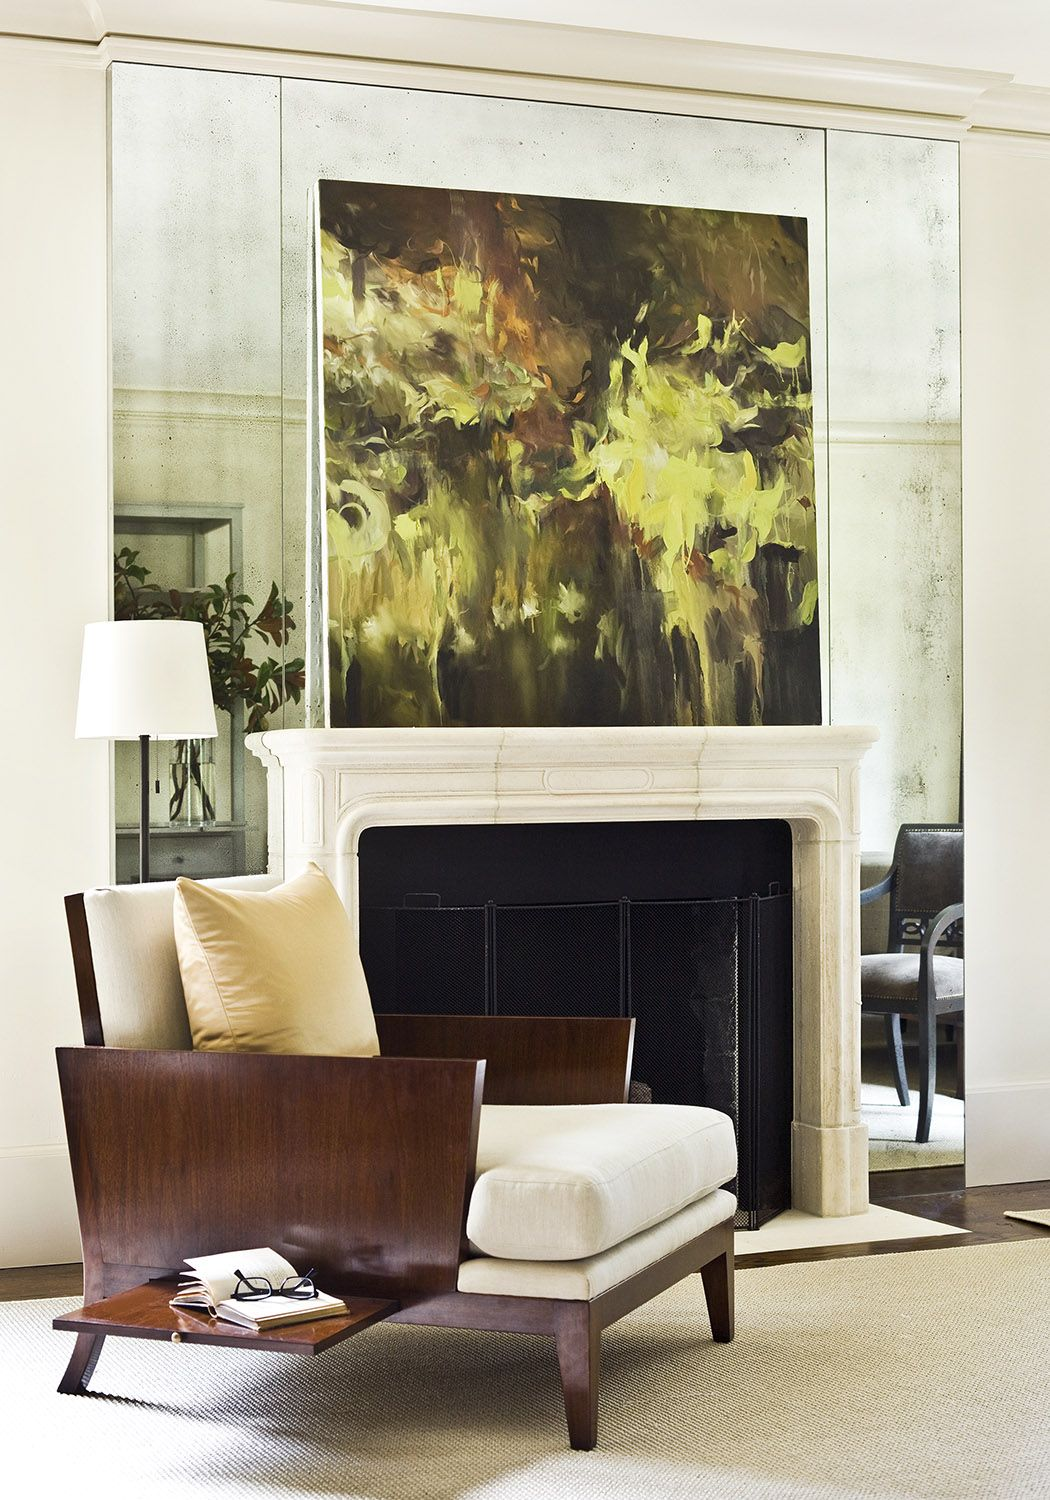 Portfolio robert brown interior design atlanta - Affordable interior design atlanta ...